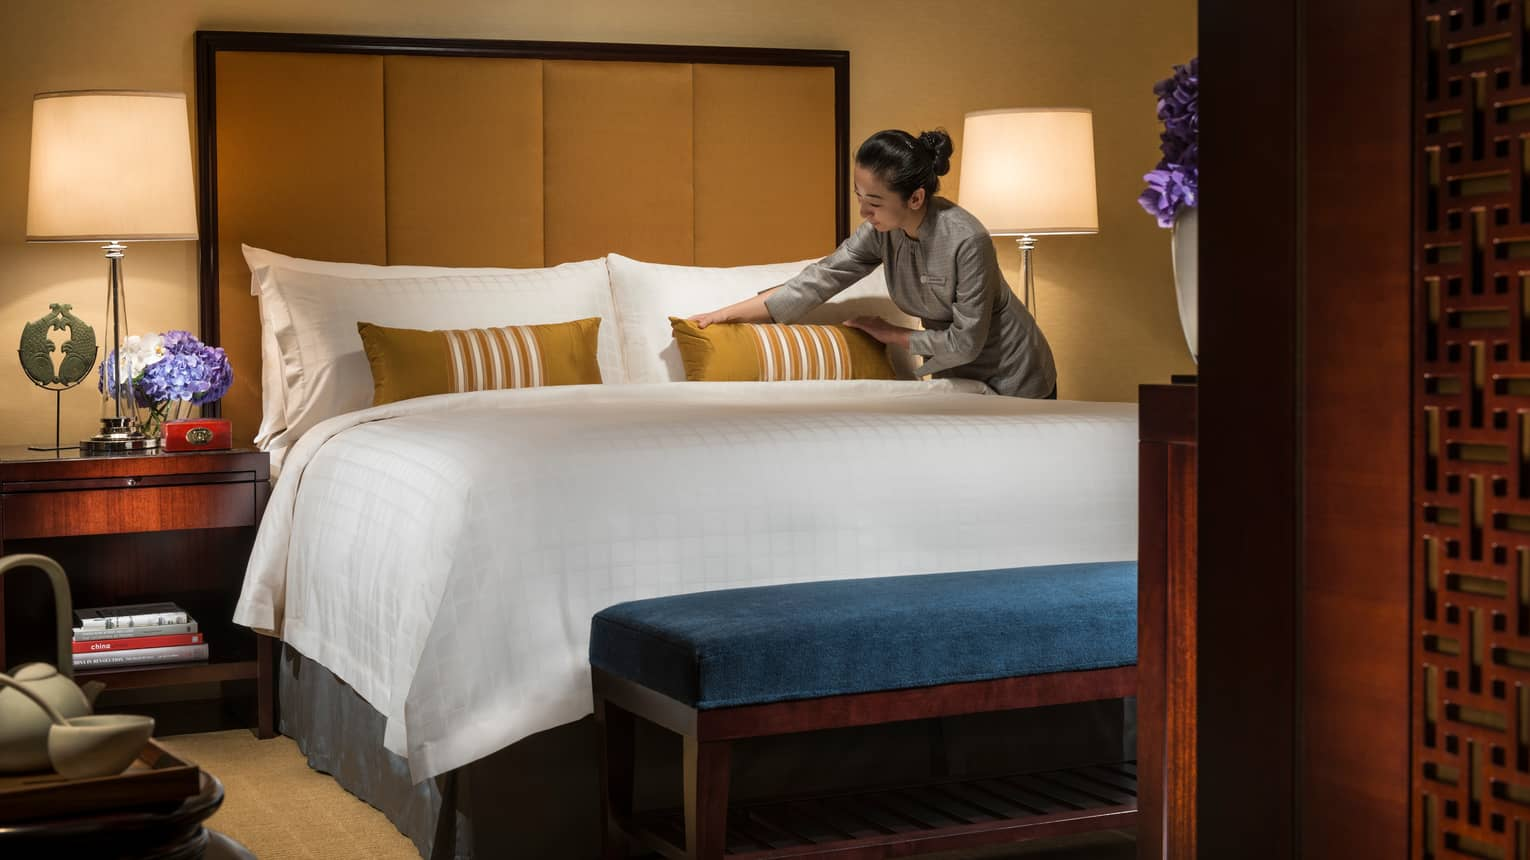 Hotel staff makes bed, adjusts gold accent pillow on white pillows, linens